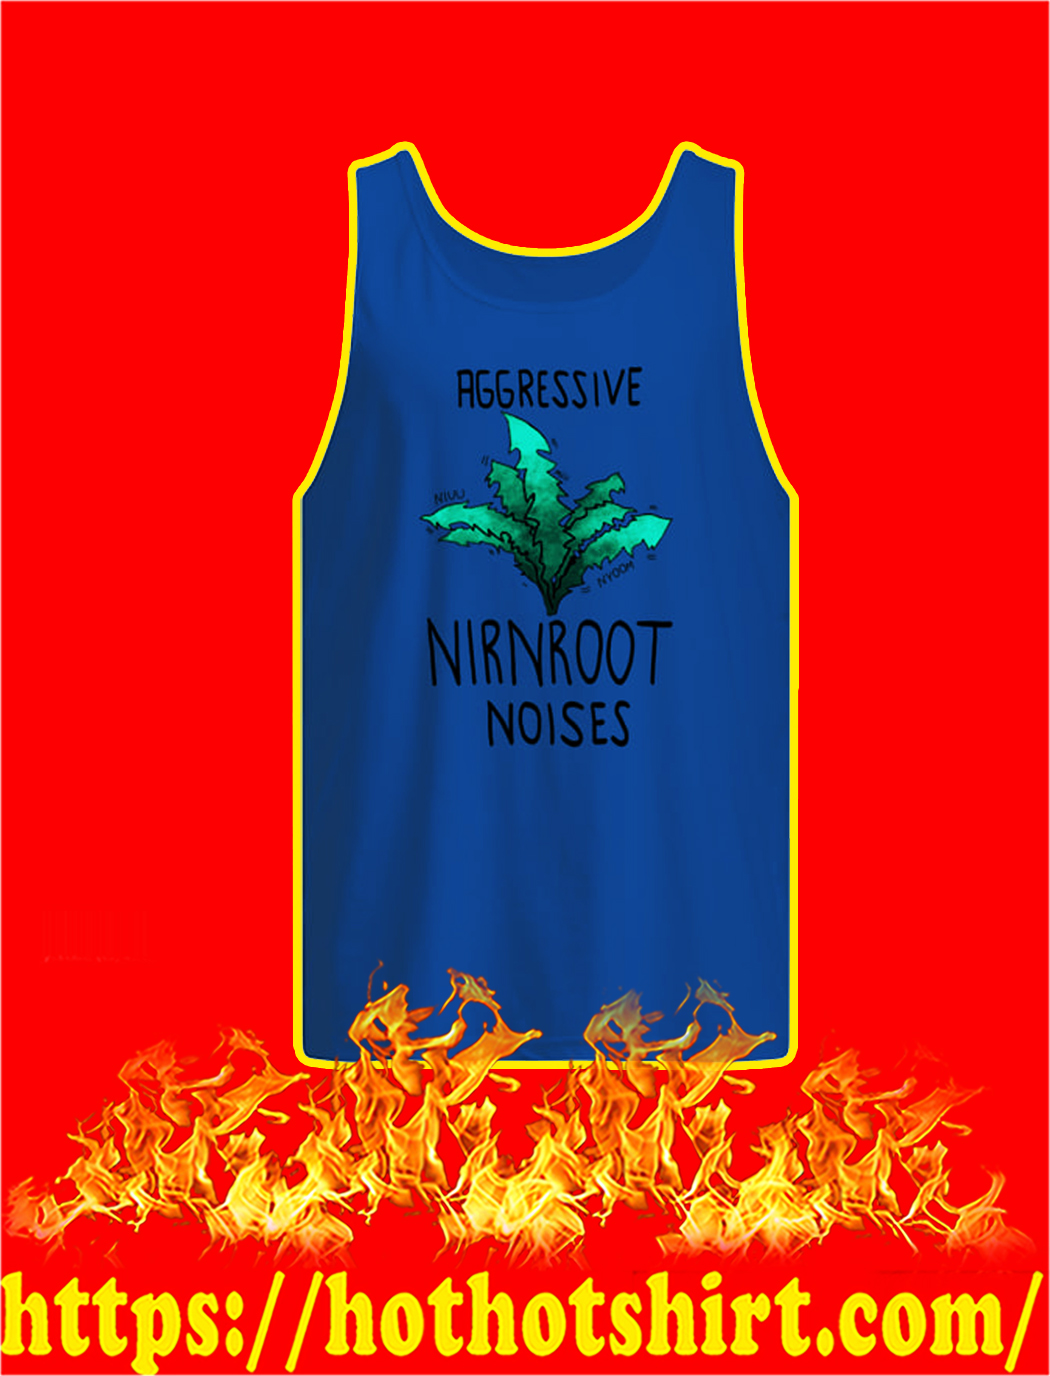 Aggressive Nirnroot Noises tank top